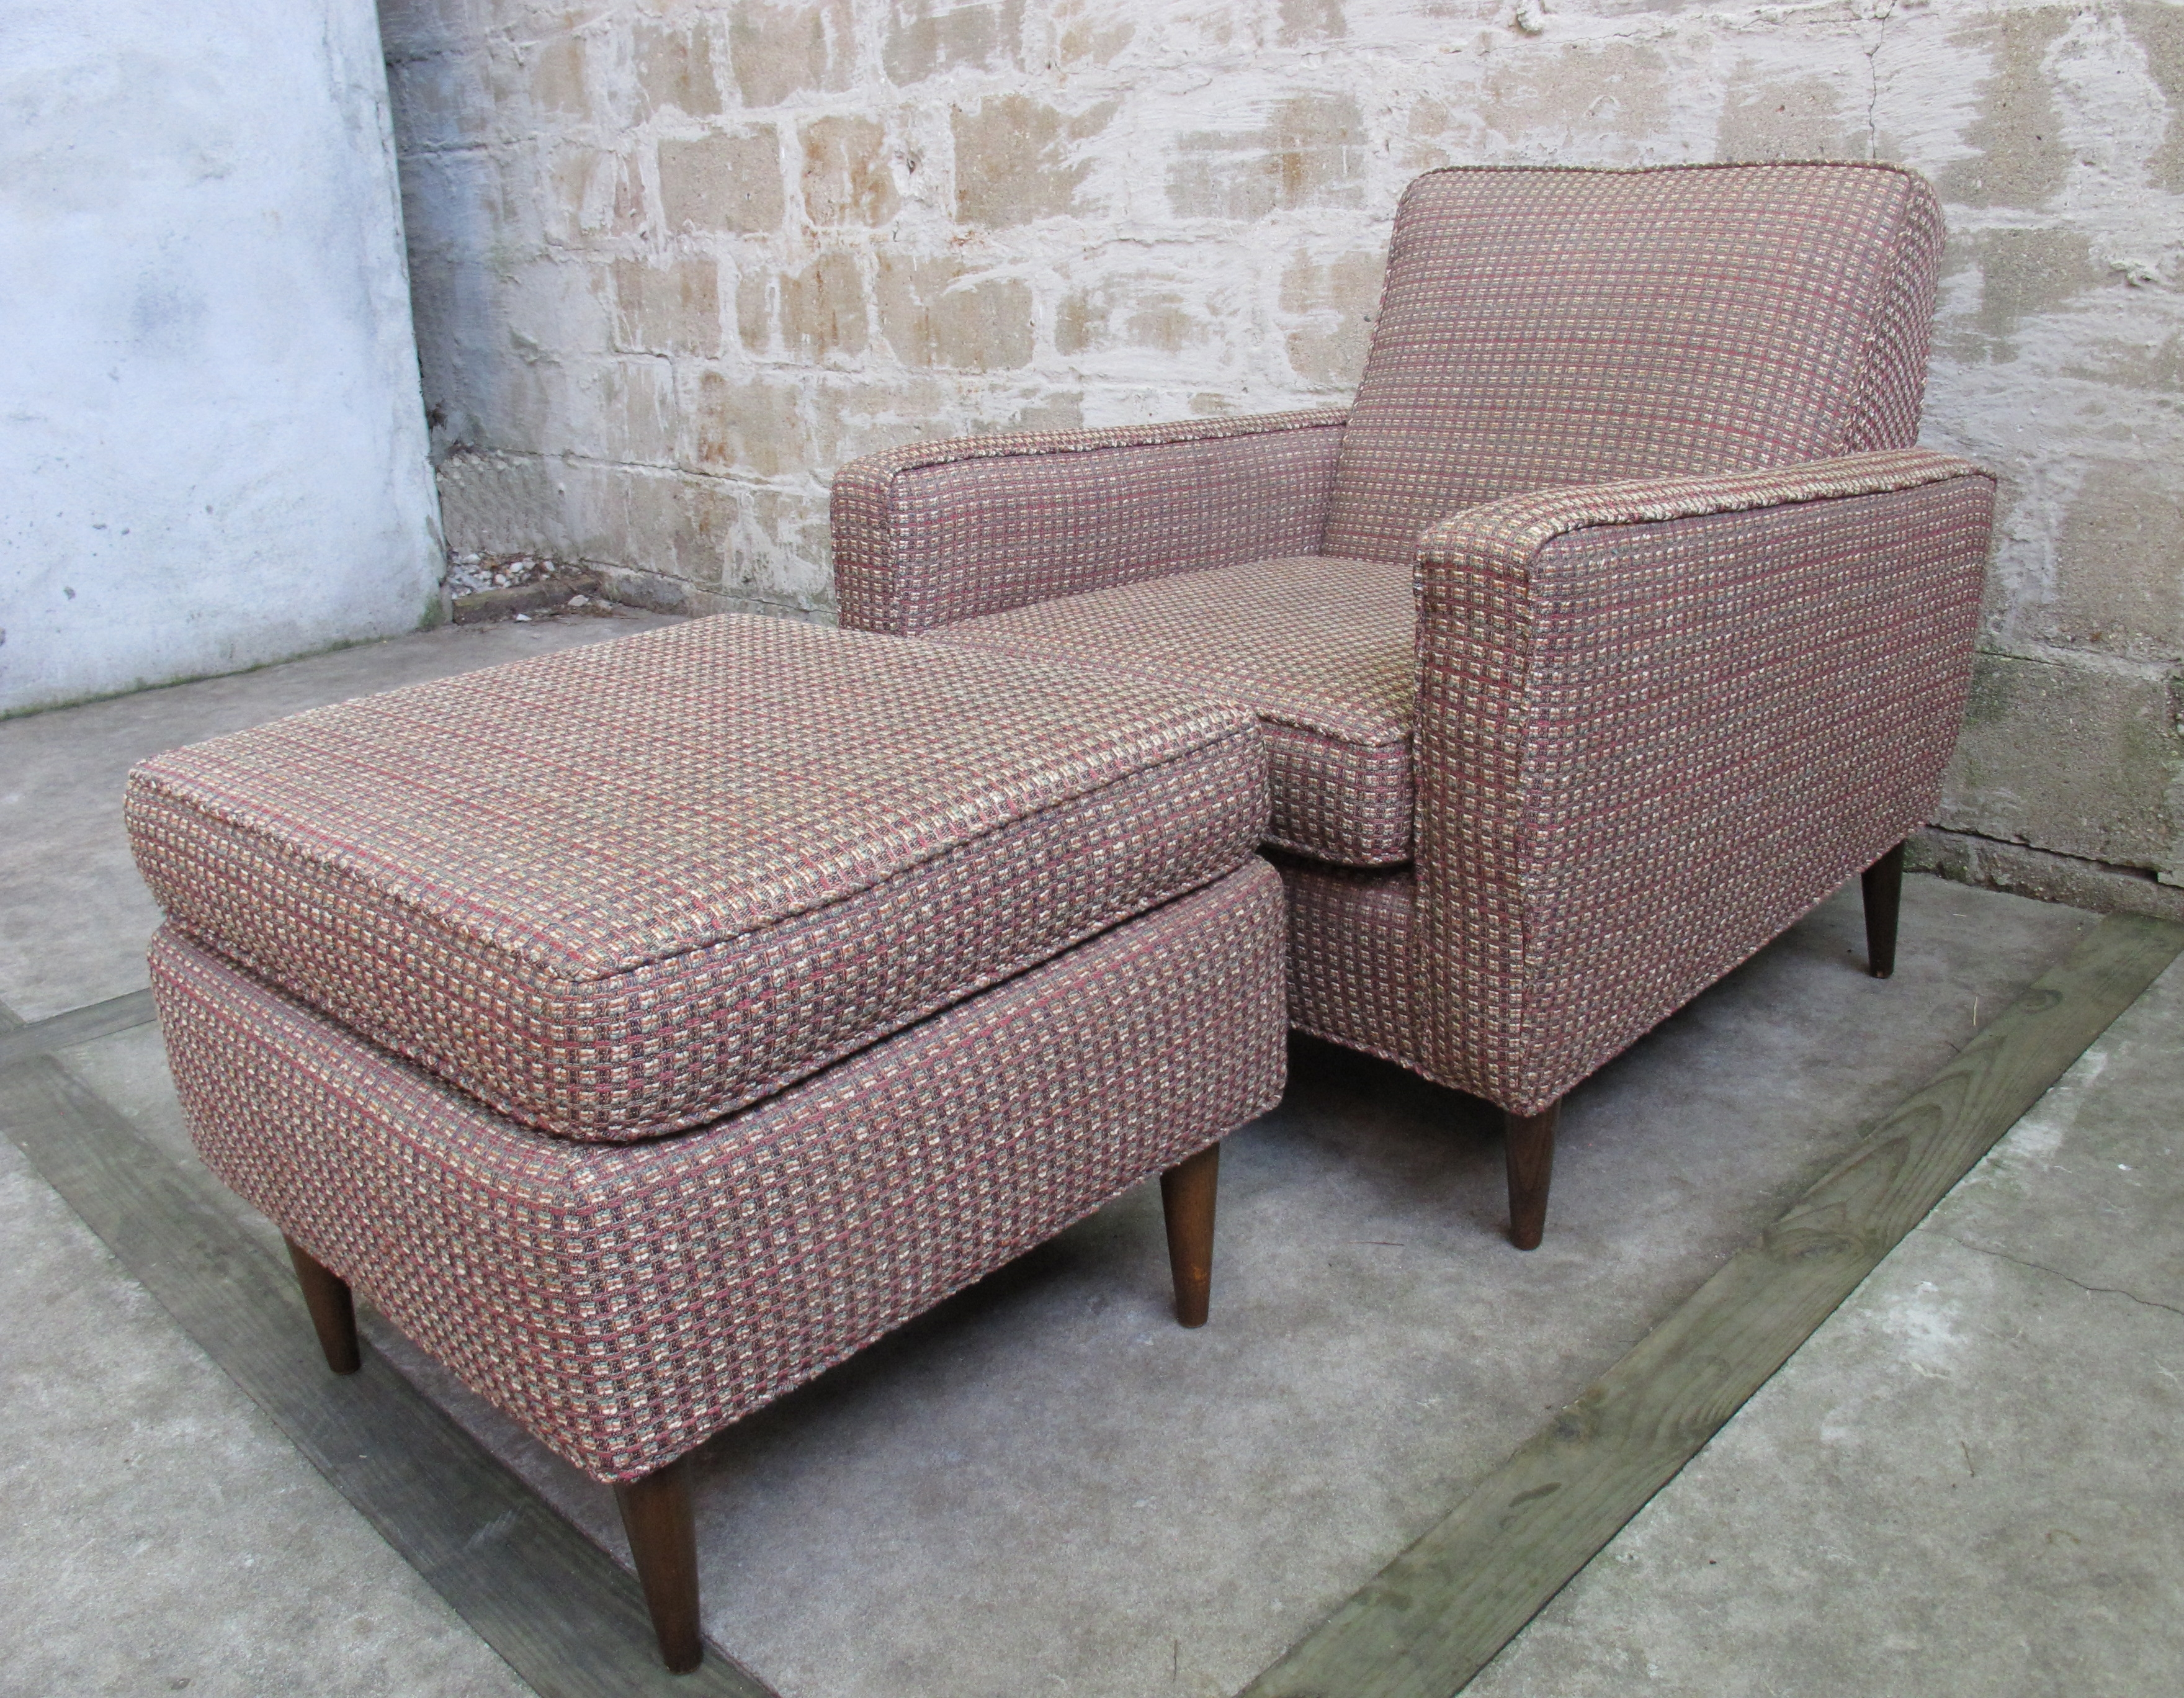 Sold Items Adverts Vintage Throughout Widely Used Chaise Lounge Chairs With Ottoman (View 6 of 15)